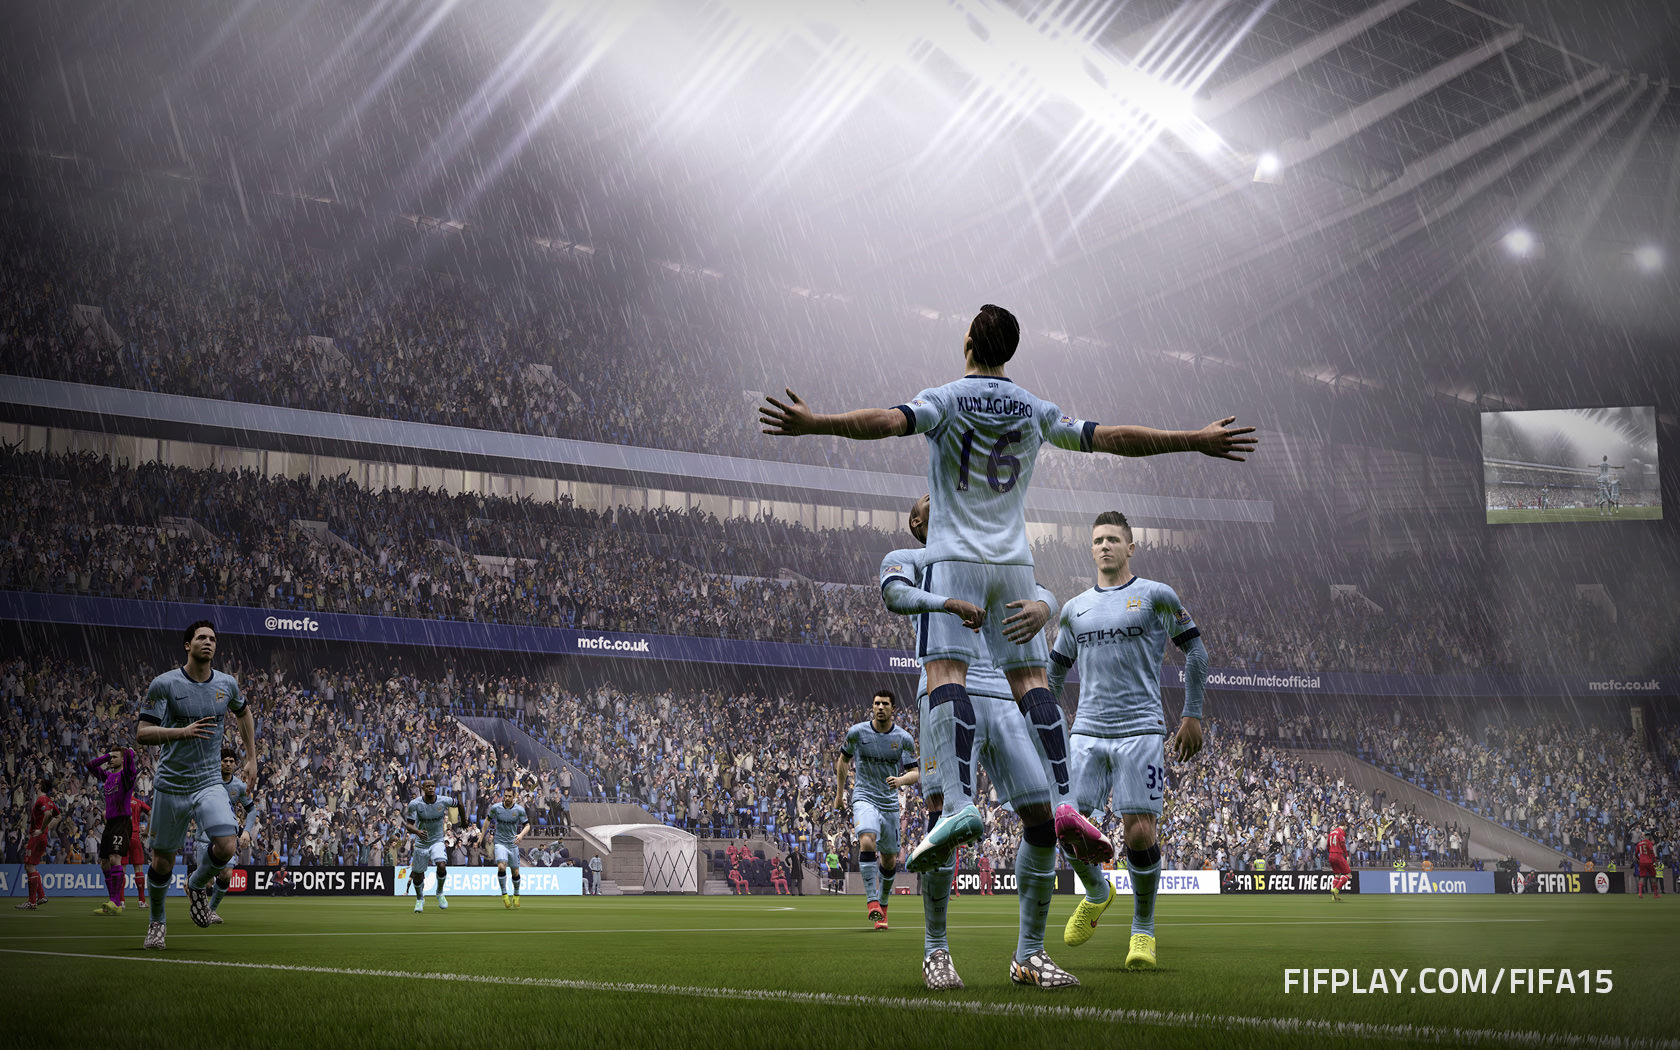 fifa 15 wallpapers fifplay